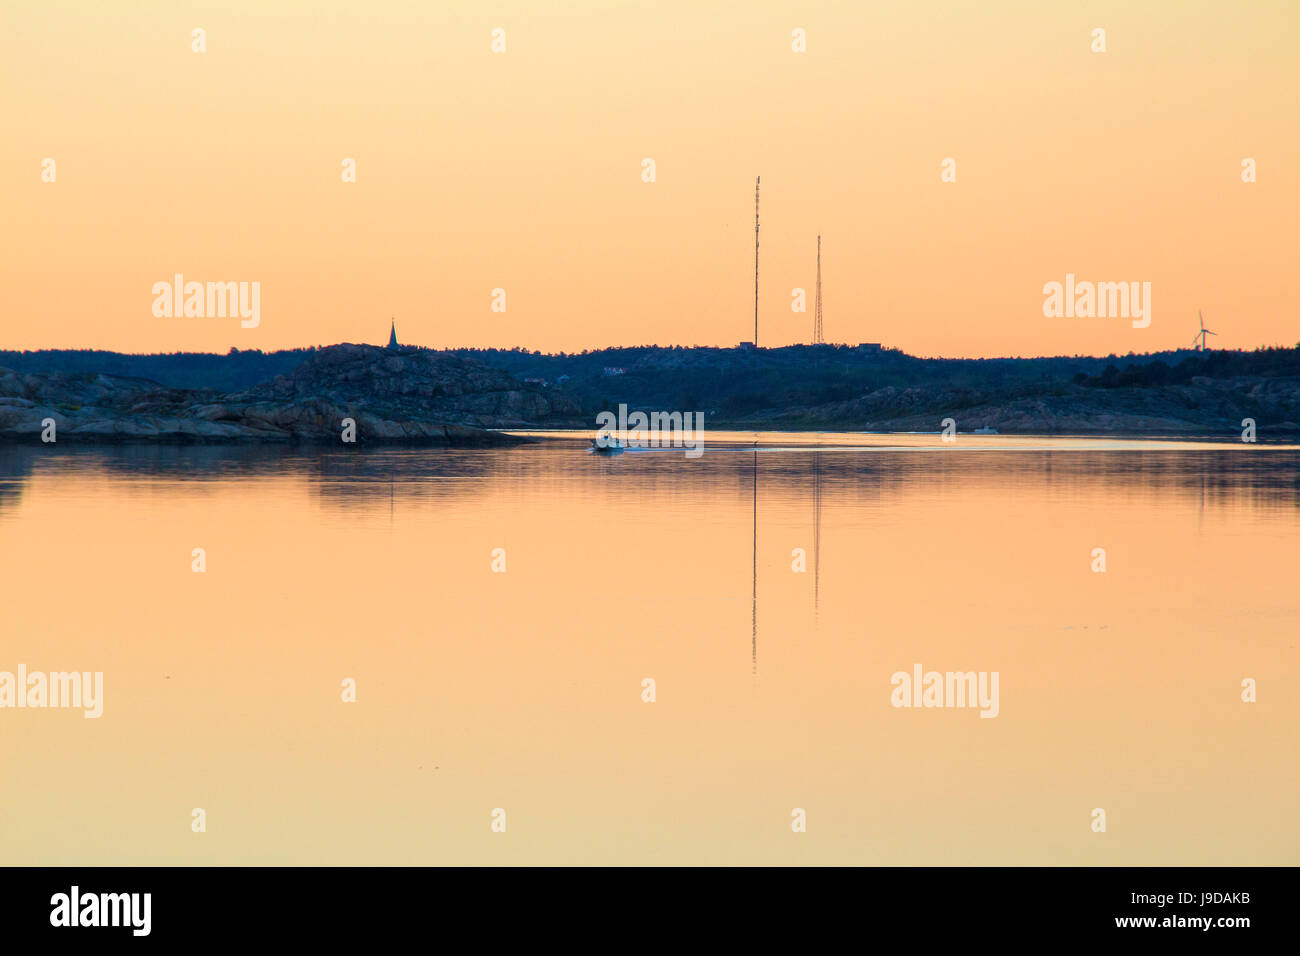 Boat driving in the sunset over mirror clear ocean - Stock Image